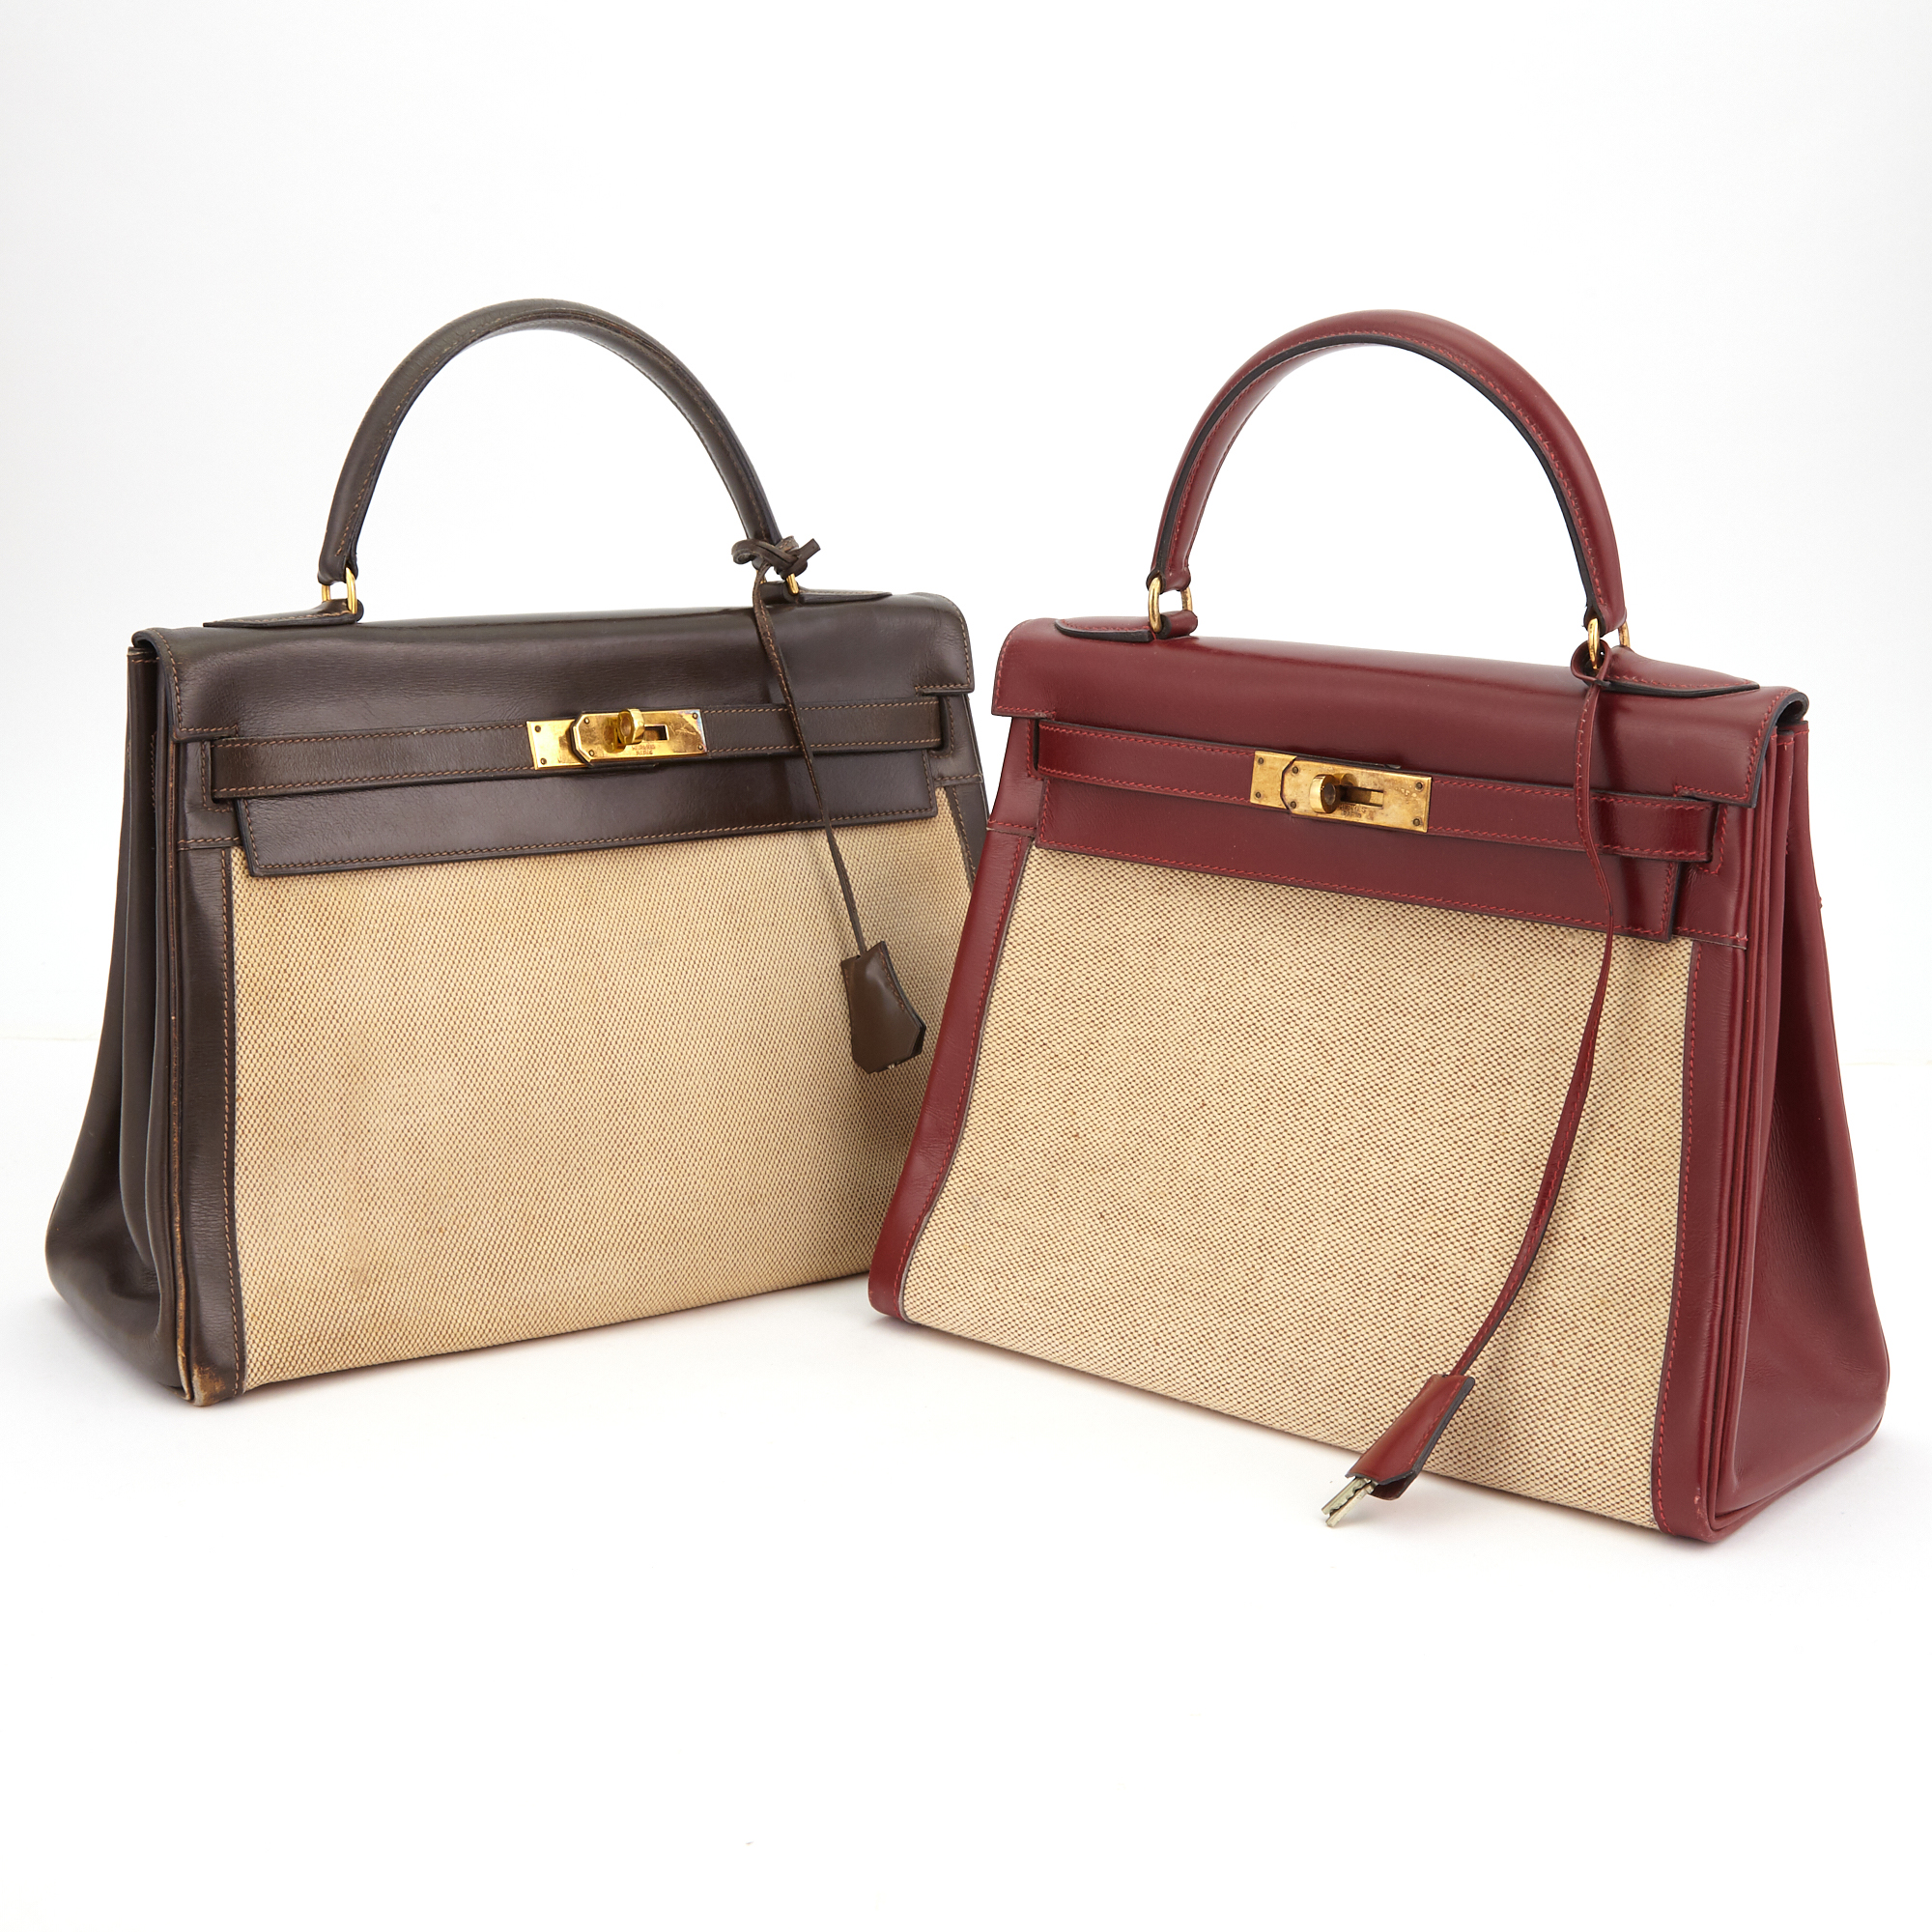 Lot image - Hermés Burgandy Calfskin and Canvas Kelly 28 Handbag and Hermés Chocolate Calfskin and Canvas Kelly 32 Handbag